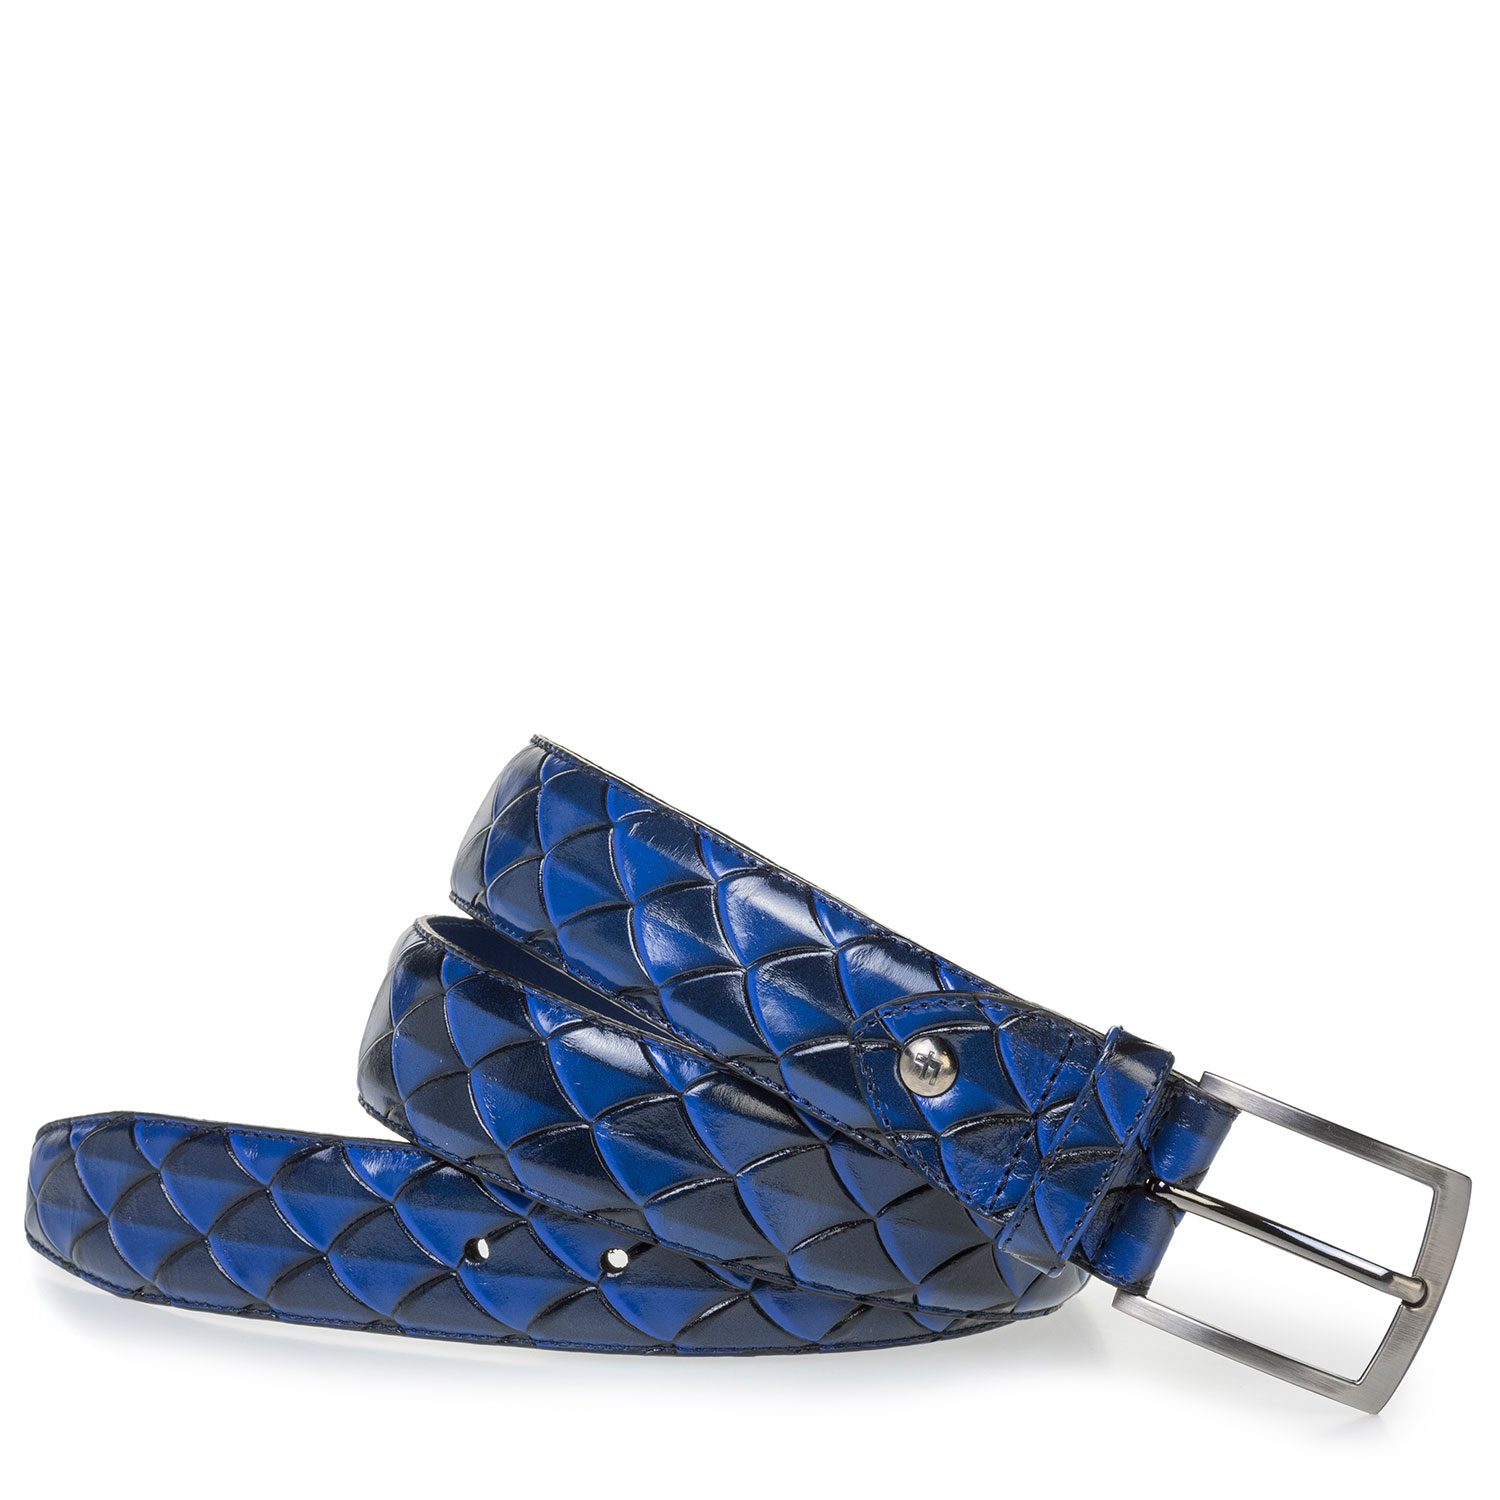 75201/63 - Premium blue leather belt with print